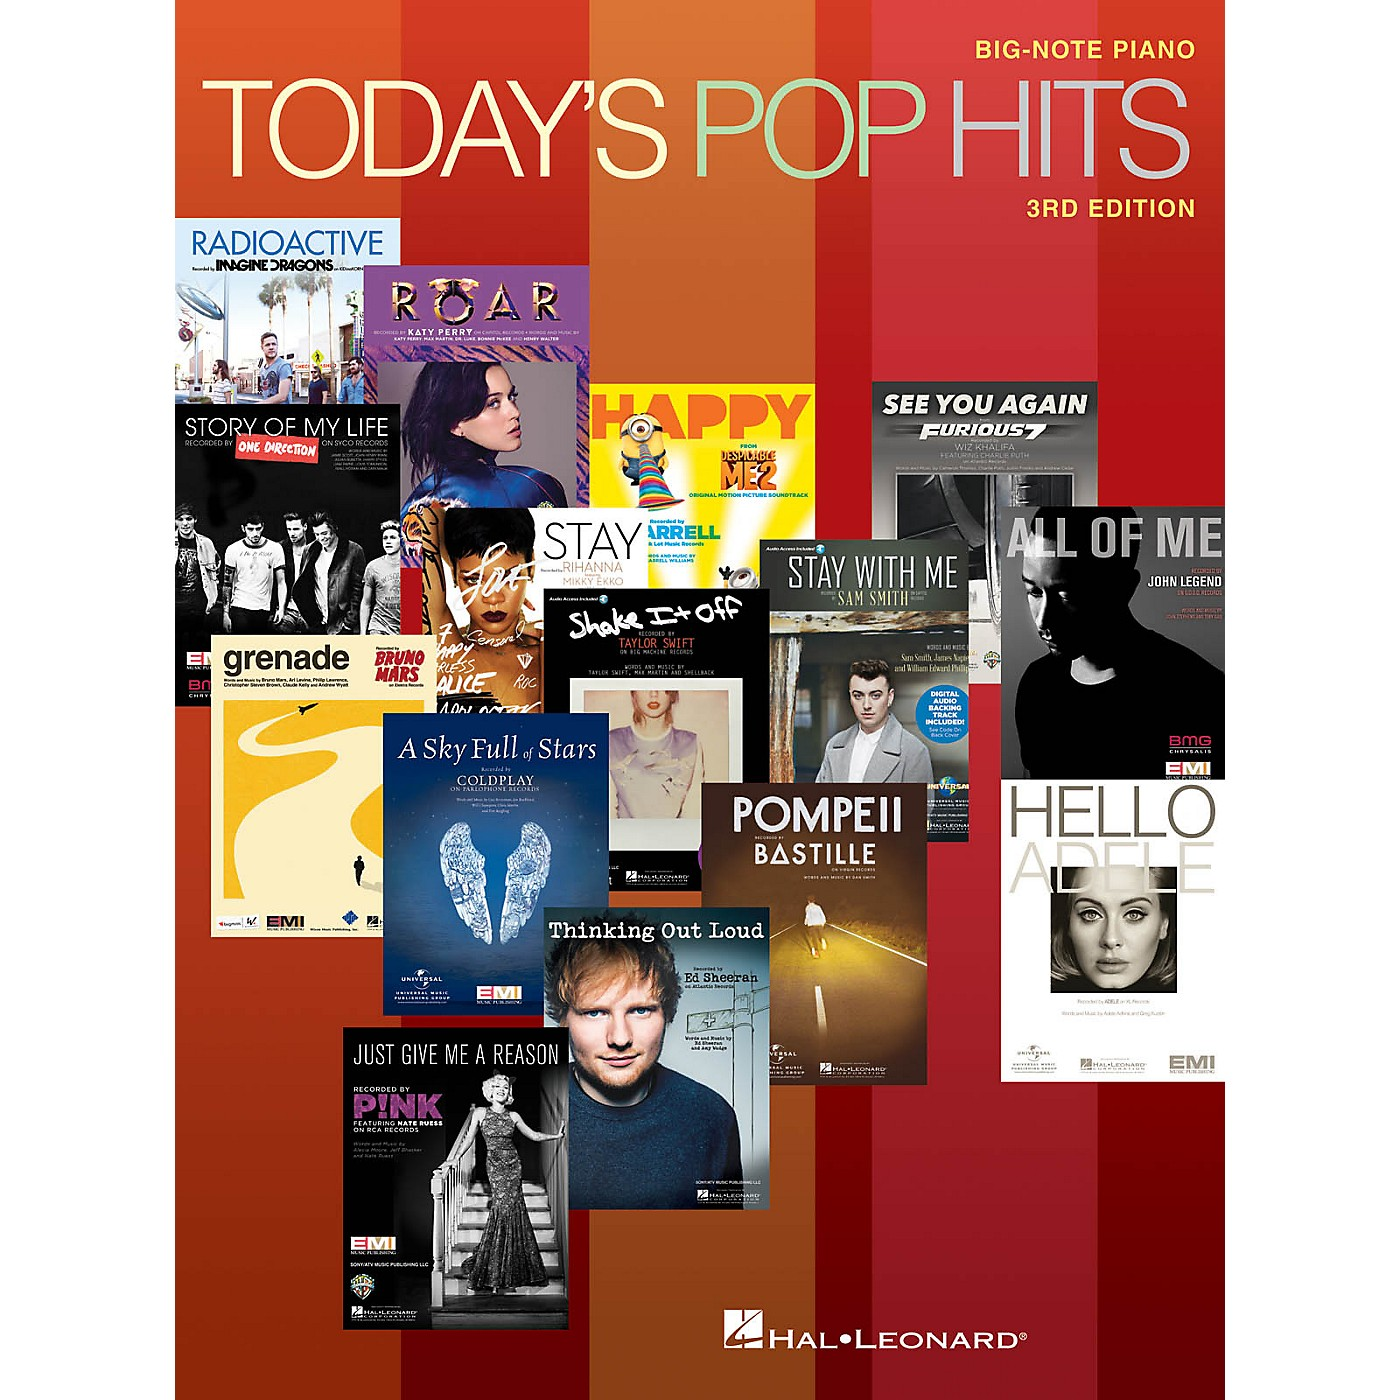 Hal Leonard Today's Pop Hits - 3rd Edition Big-Note Piano Songbook thumbnail